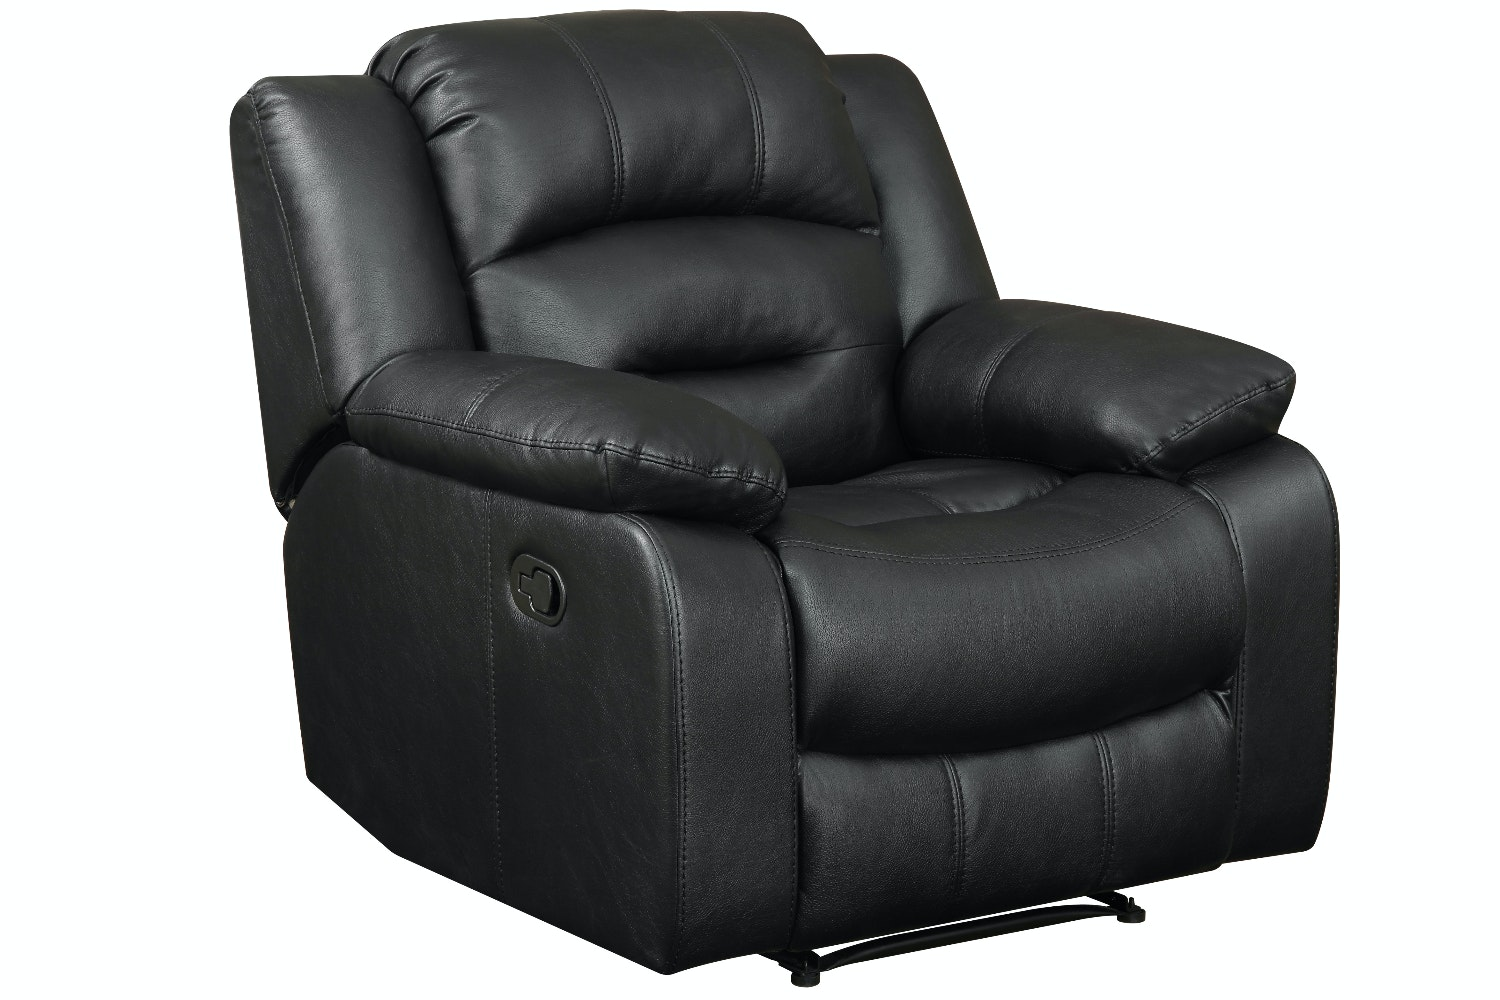 Delicieux Hunter Recliner Chair | Black